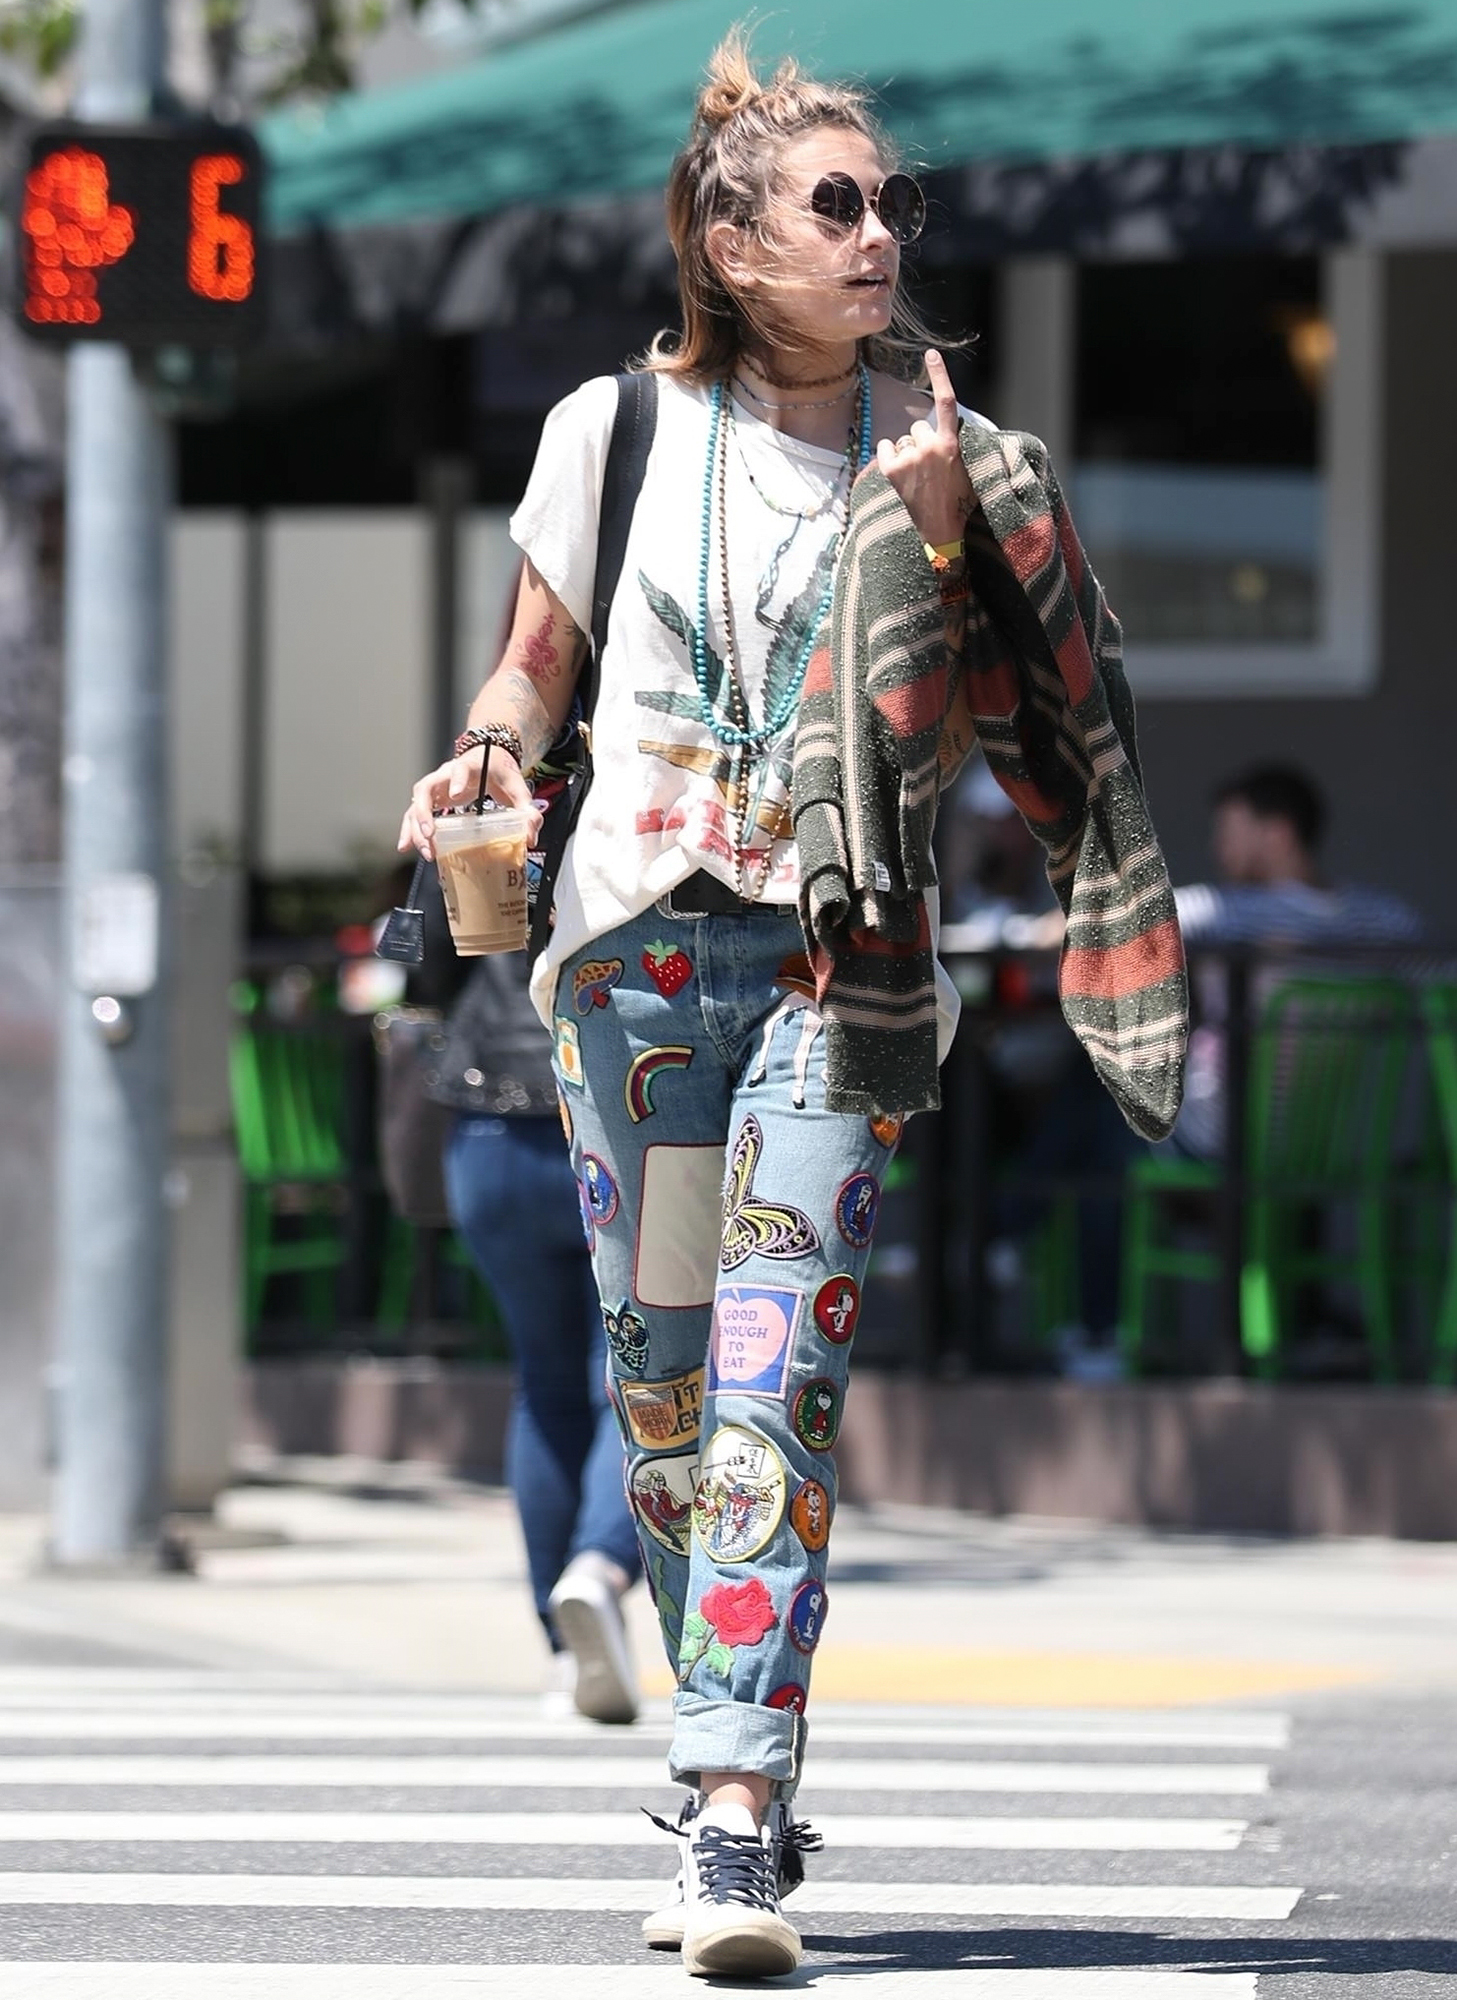 Paris Jackson grabs lunch with a friend while proudly showing off a marijuana shirt